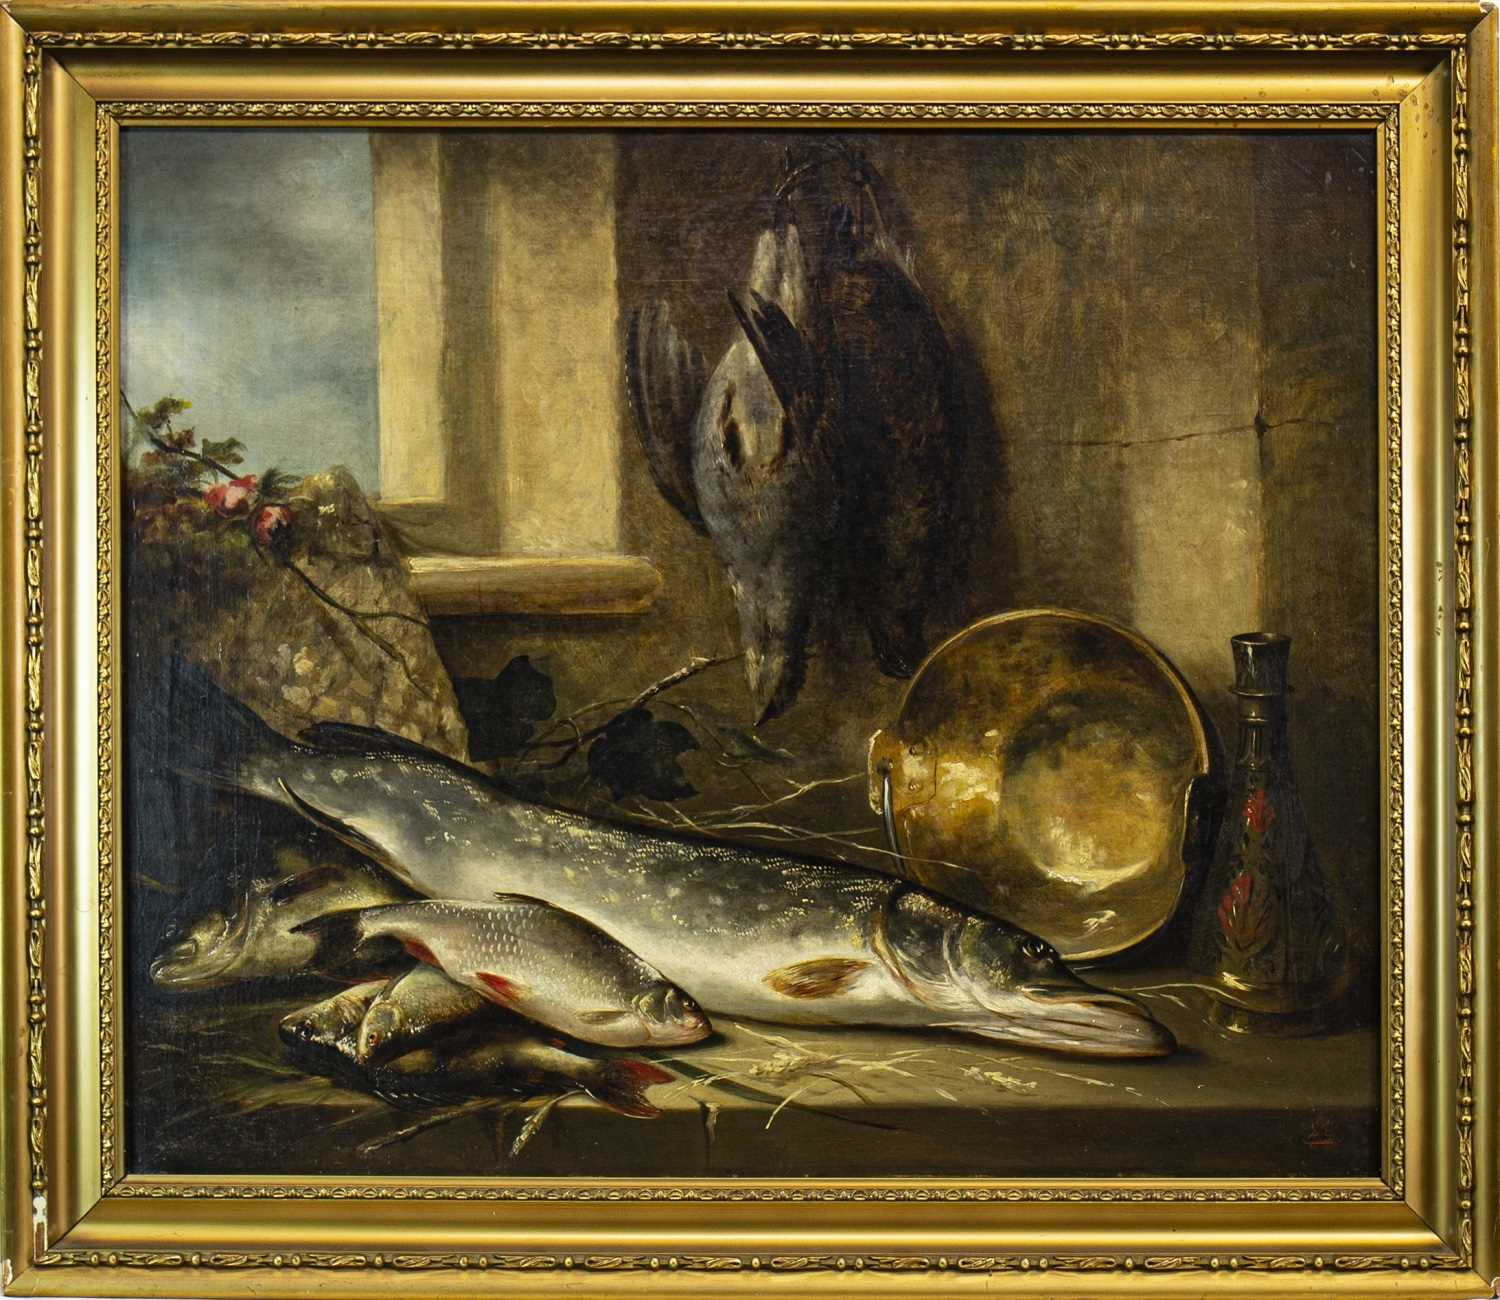 Lot 623-STILL LIFE WITH FISH AND GAME